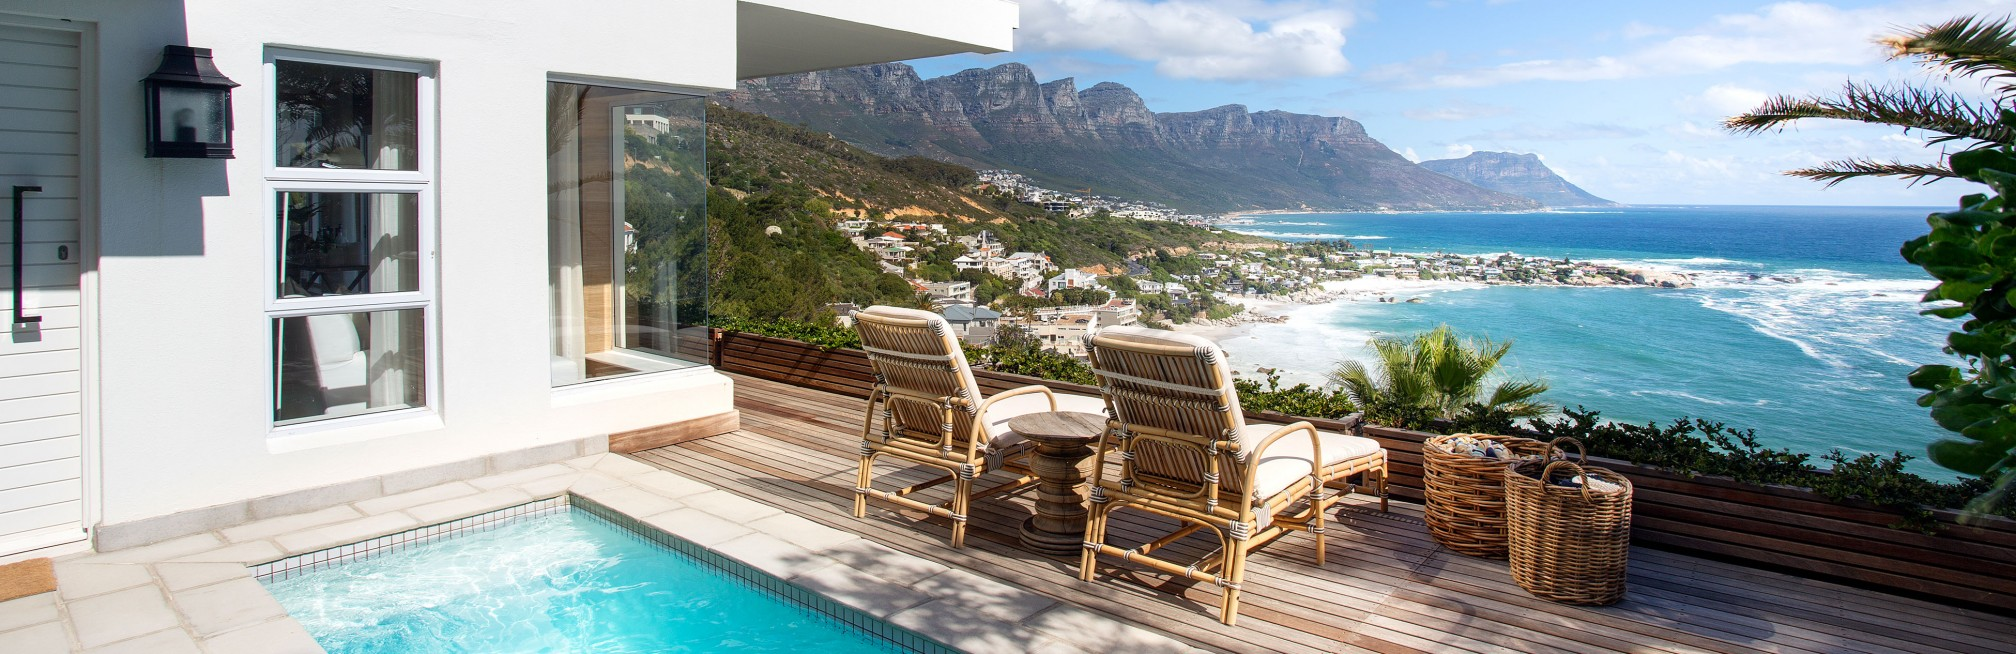 The ultimate South African honeymoon